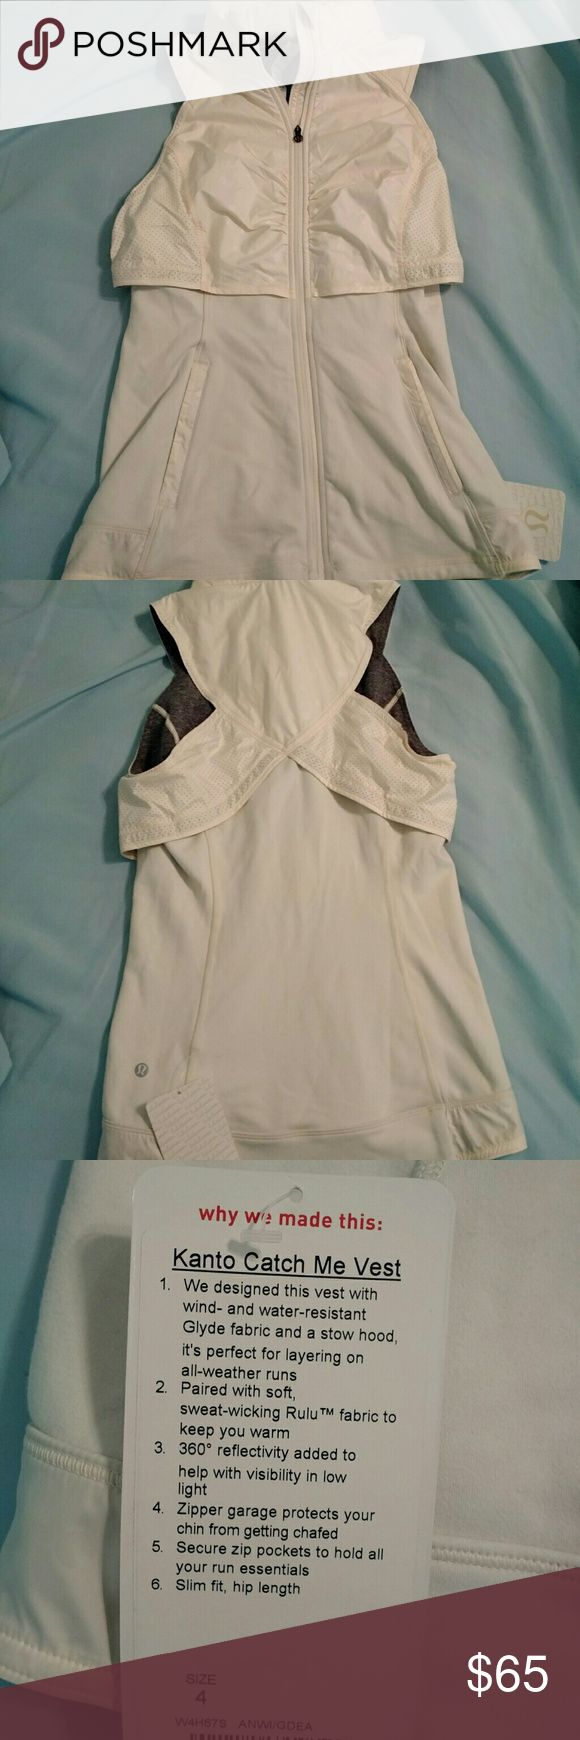 Kanto Catch Me Vest Light Lululemon Vest. Super comfortable, just too small for me now! It has a built in hood in the collar of the vest that can be put away or kept out lululemon athletica Tops